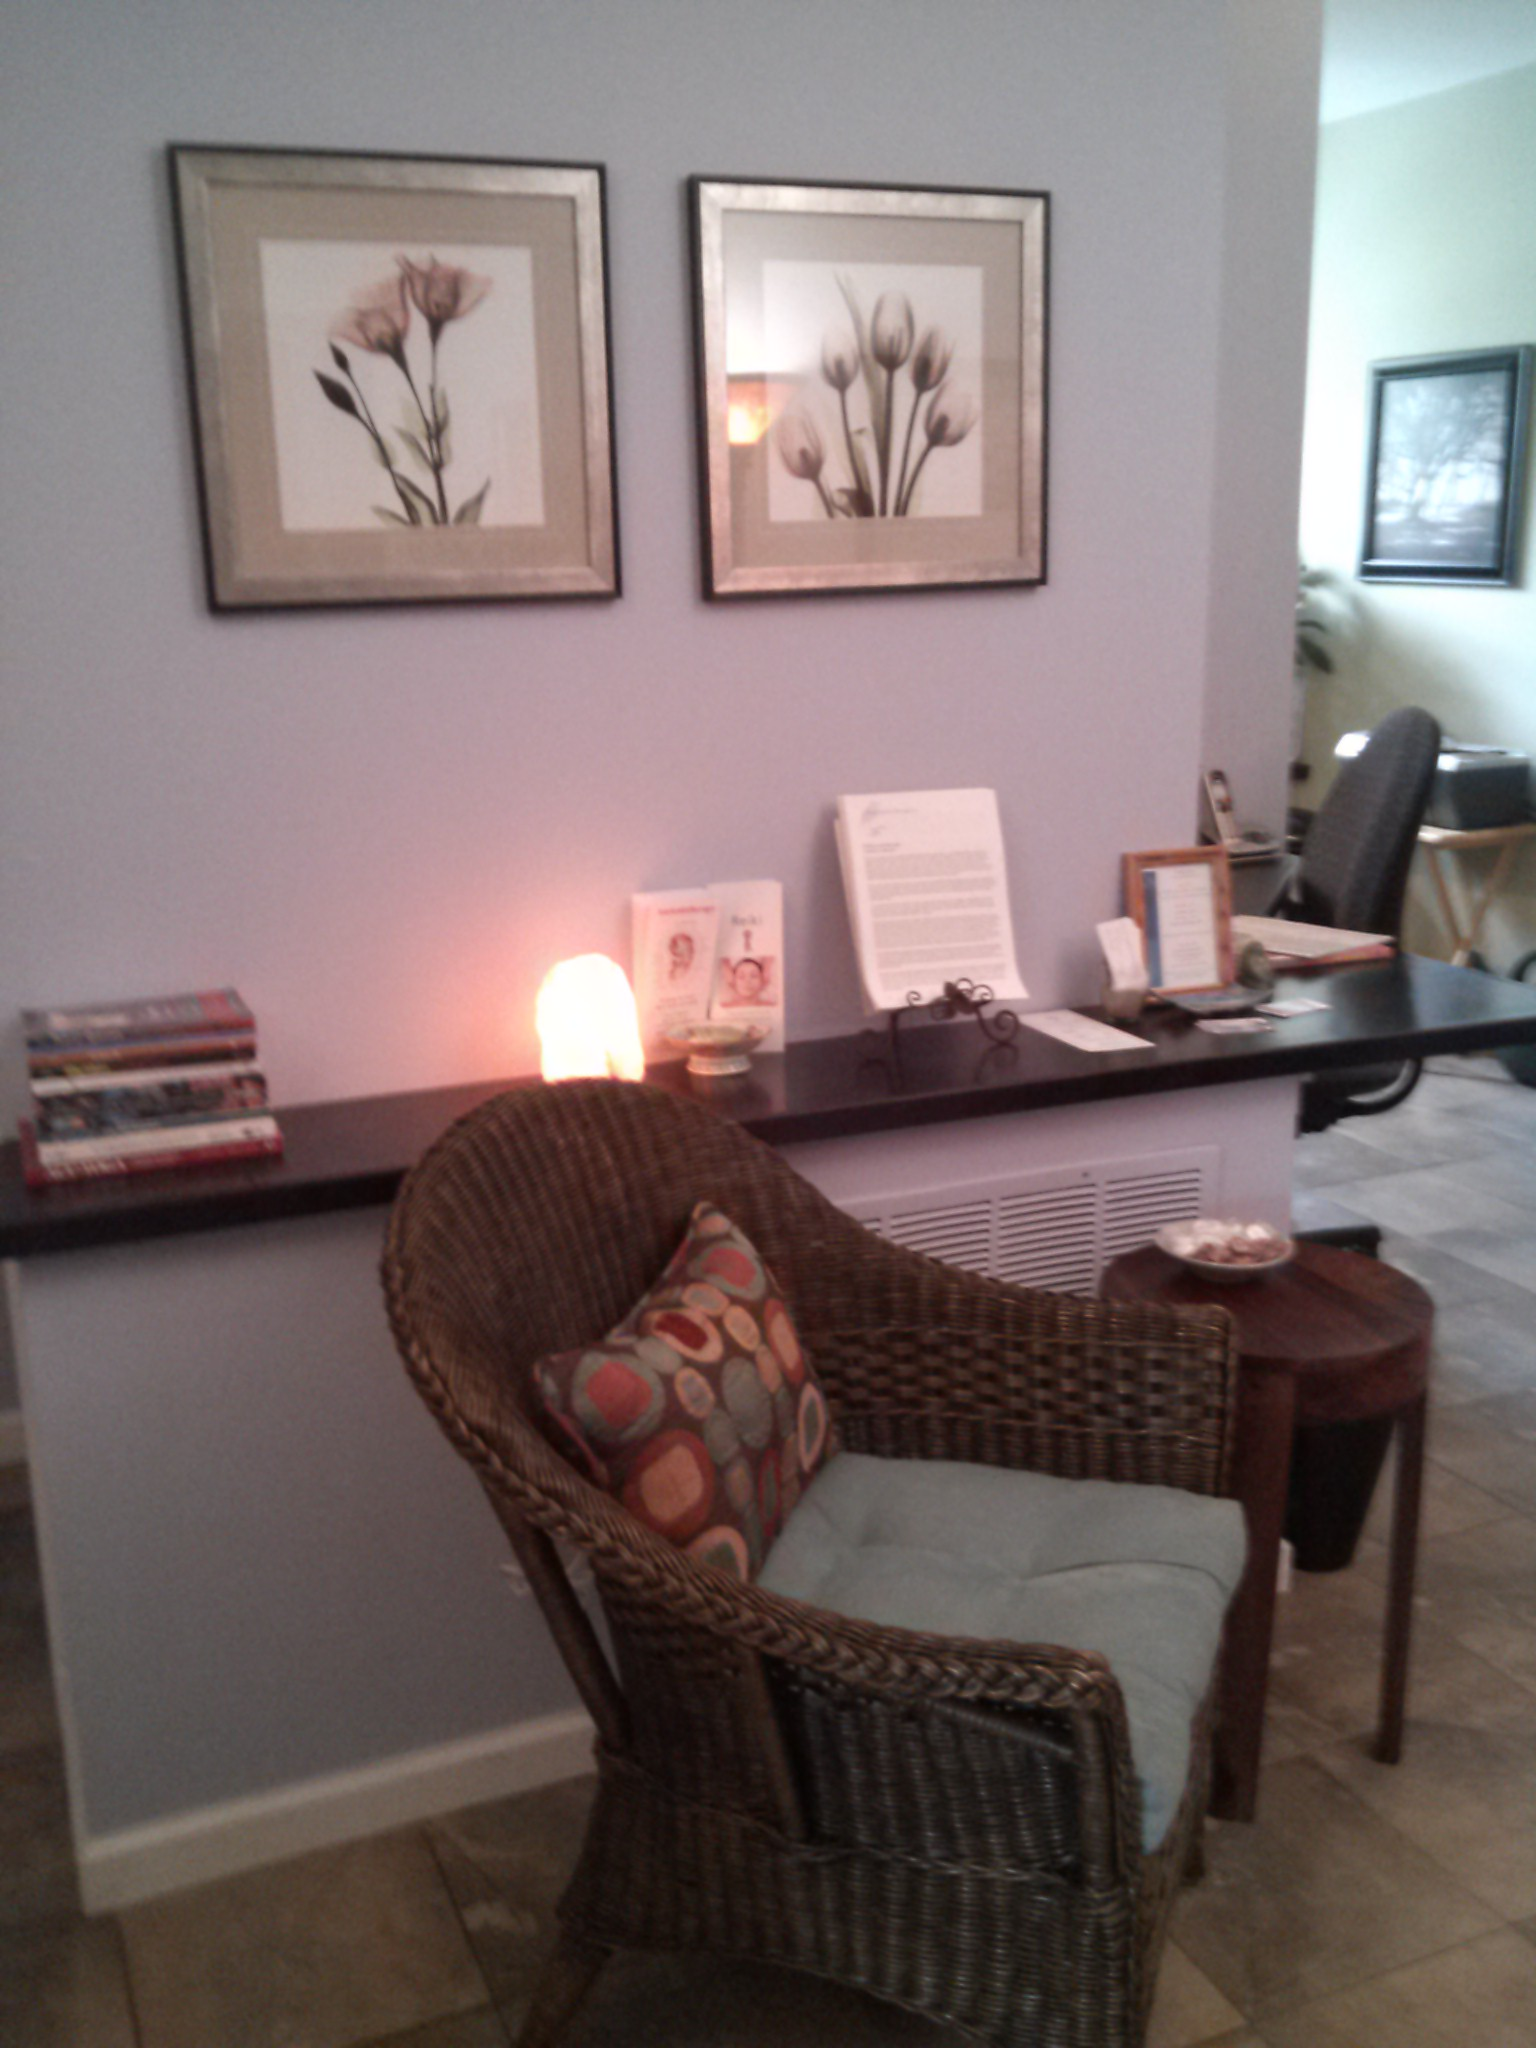 Massage studio client waiting and relaxation area in Simsbury, CT